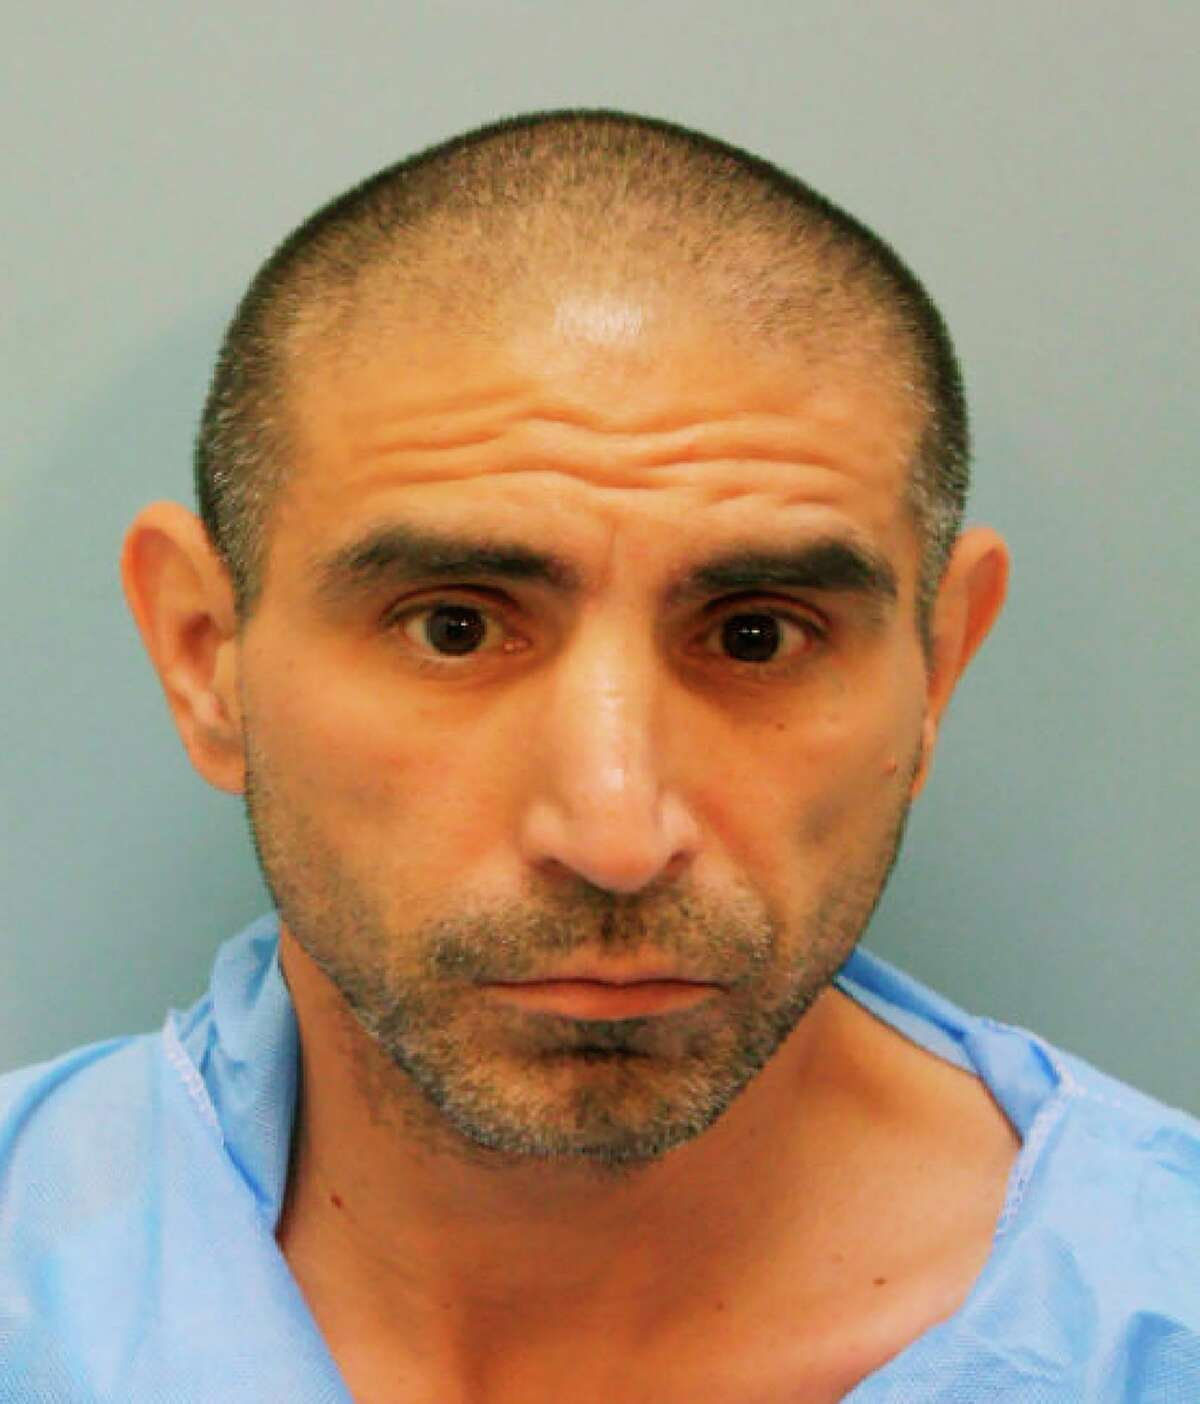 In this booking photo provided by Harris County Sheriff's Office is Robert Solis. Solis, 47, of Houston has been charged with capital murder in the Friday, Sept. 27, 2019, shooting death of Harris County Sheriff's Deputy Sandeep Dhaliwal, 42, during a traffic stop near Houston. (Harris County Sheriff's Office via AP)